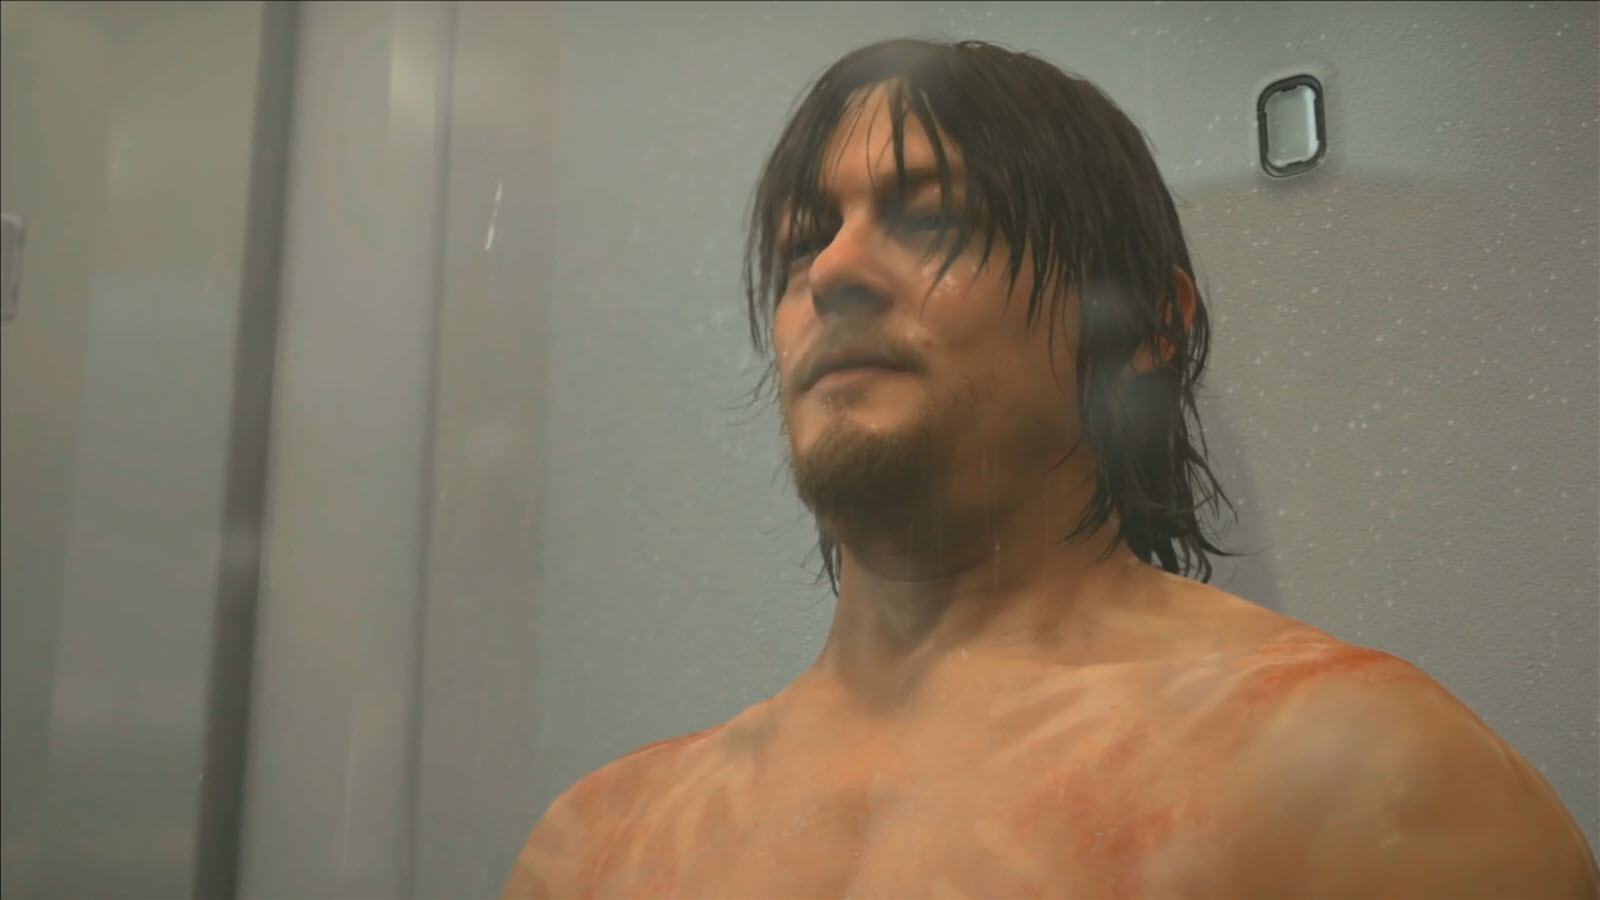 Here's the first gameplay of Death Stranding screenshot